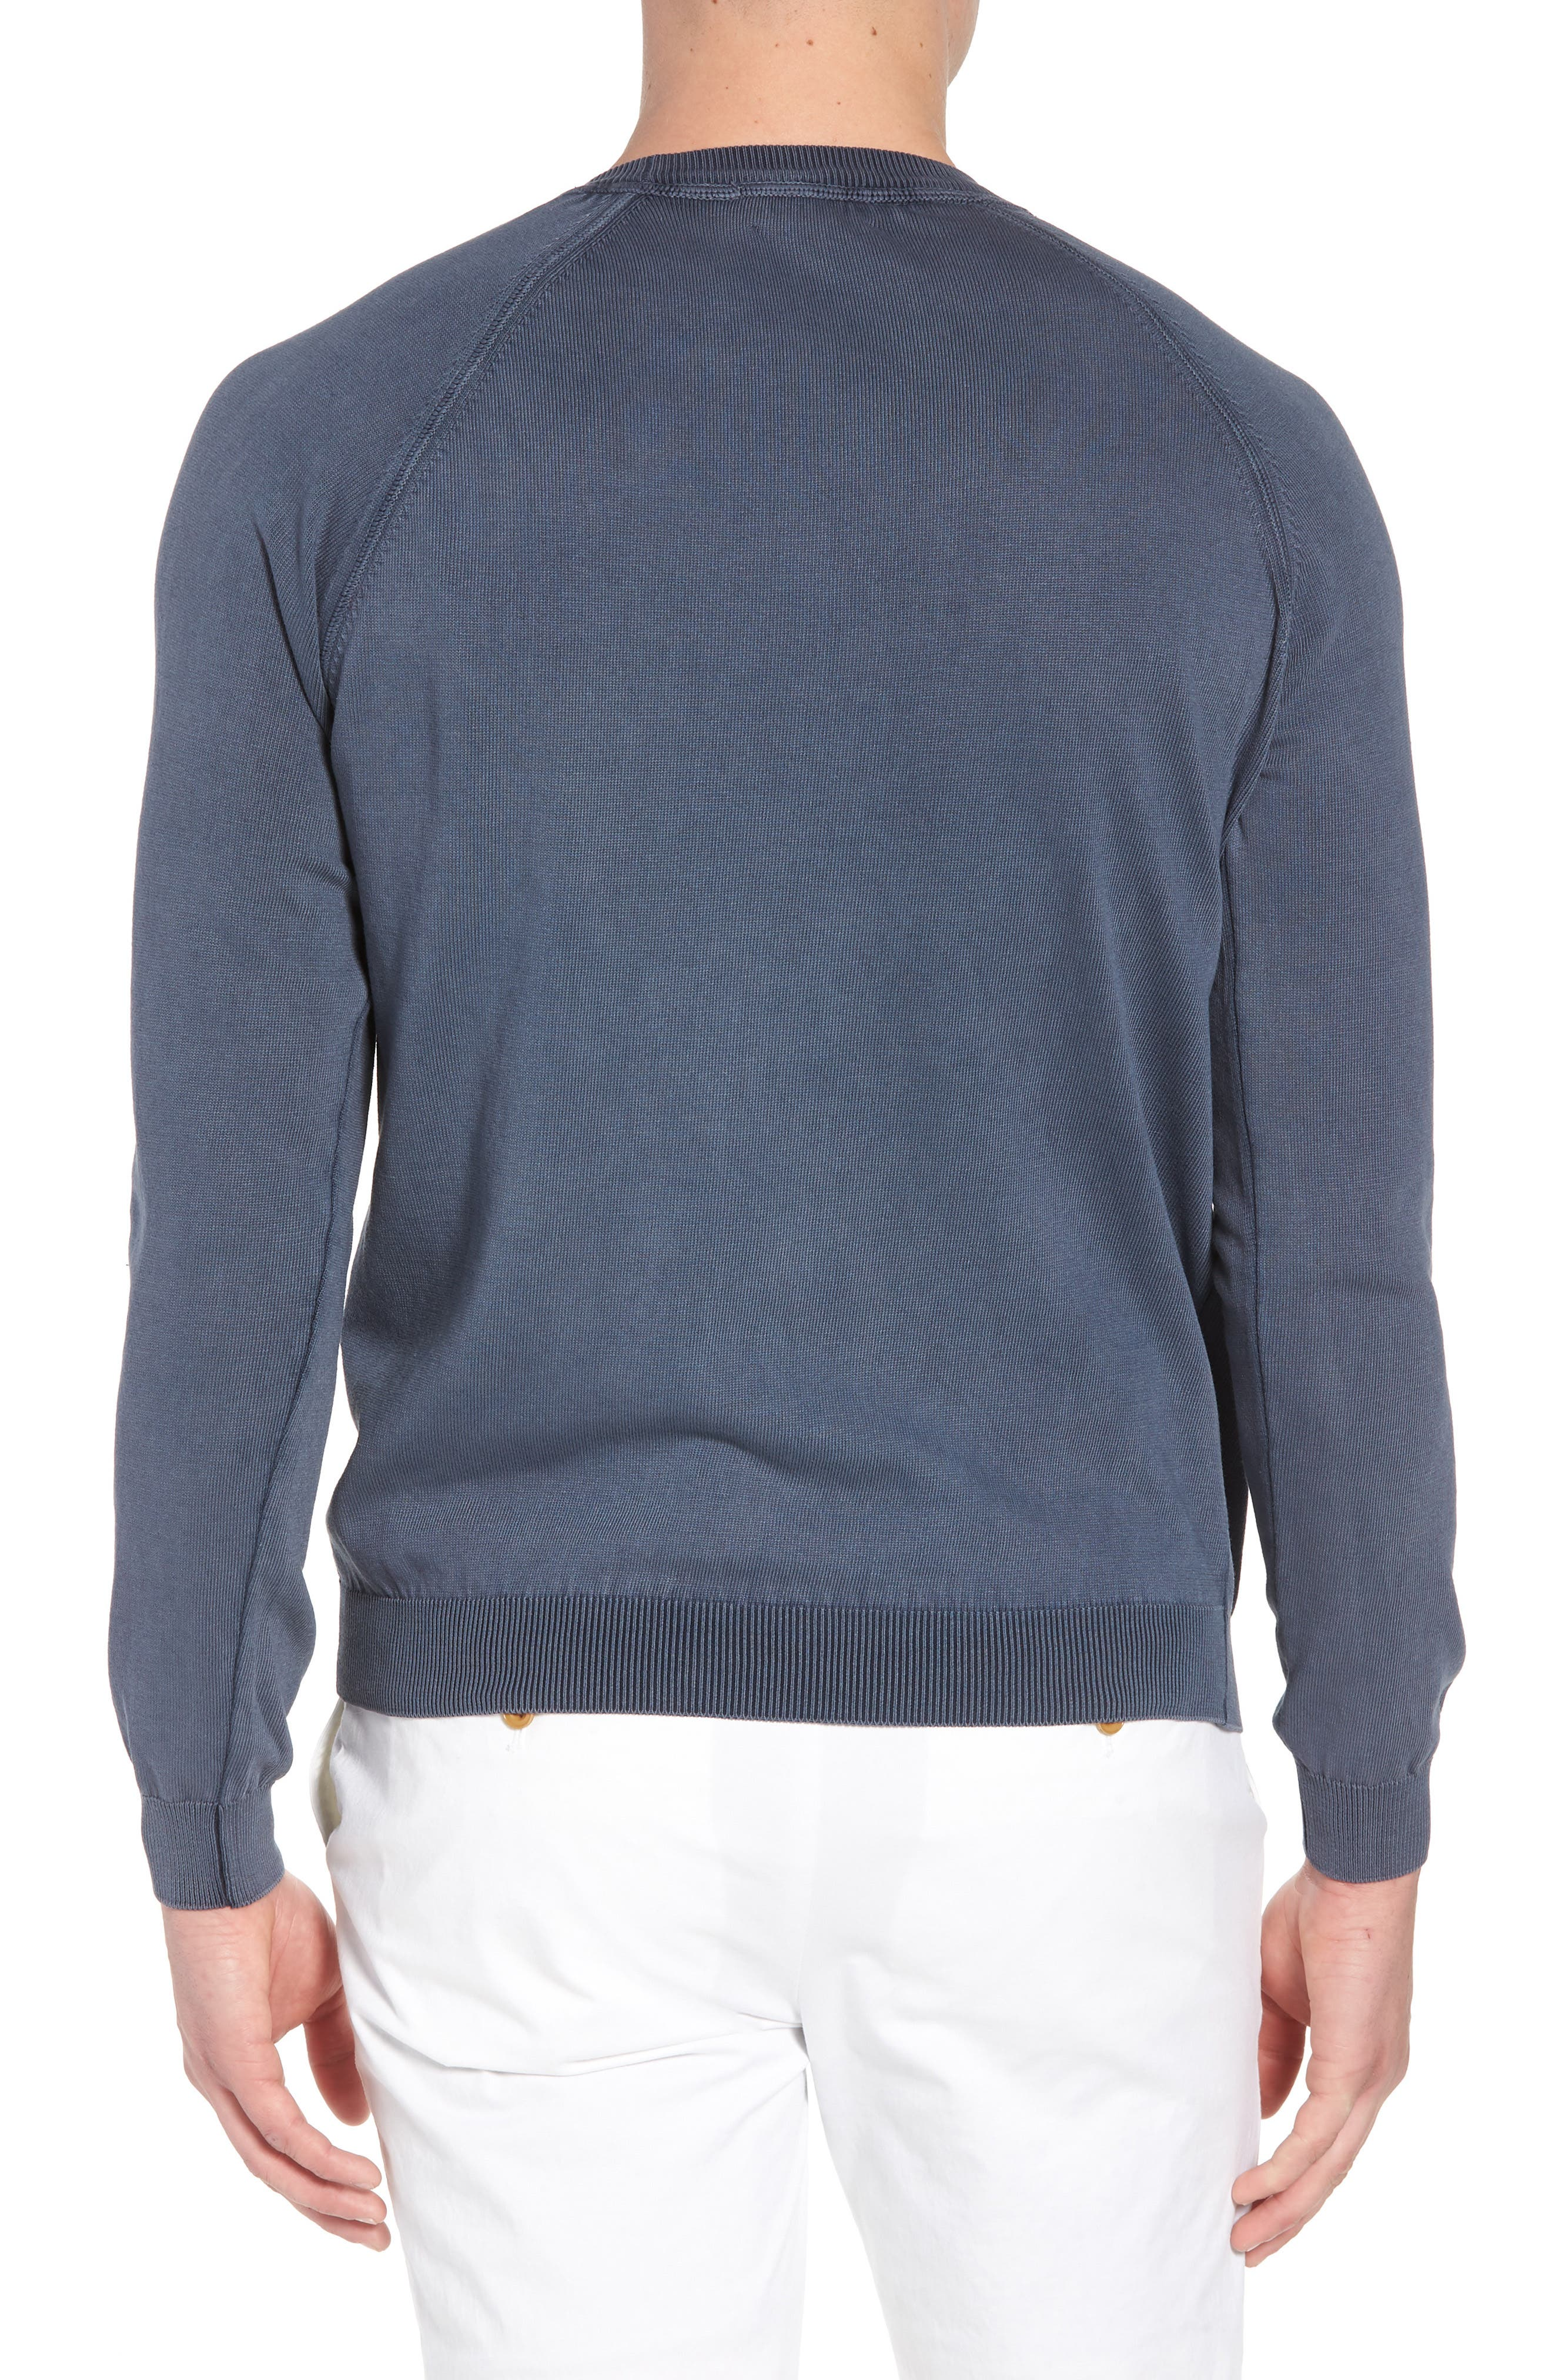 Alternate Image 2  - David Donahue Stonewash Cotton Sweatshirt